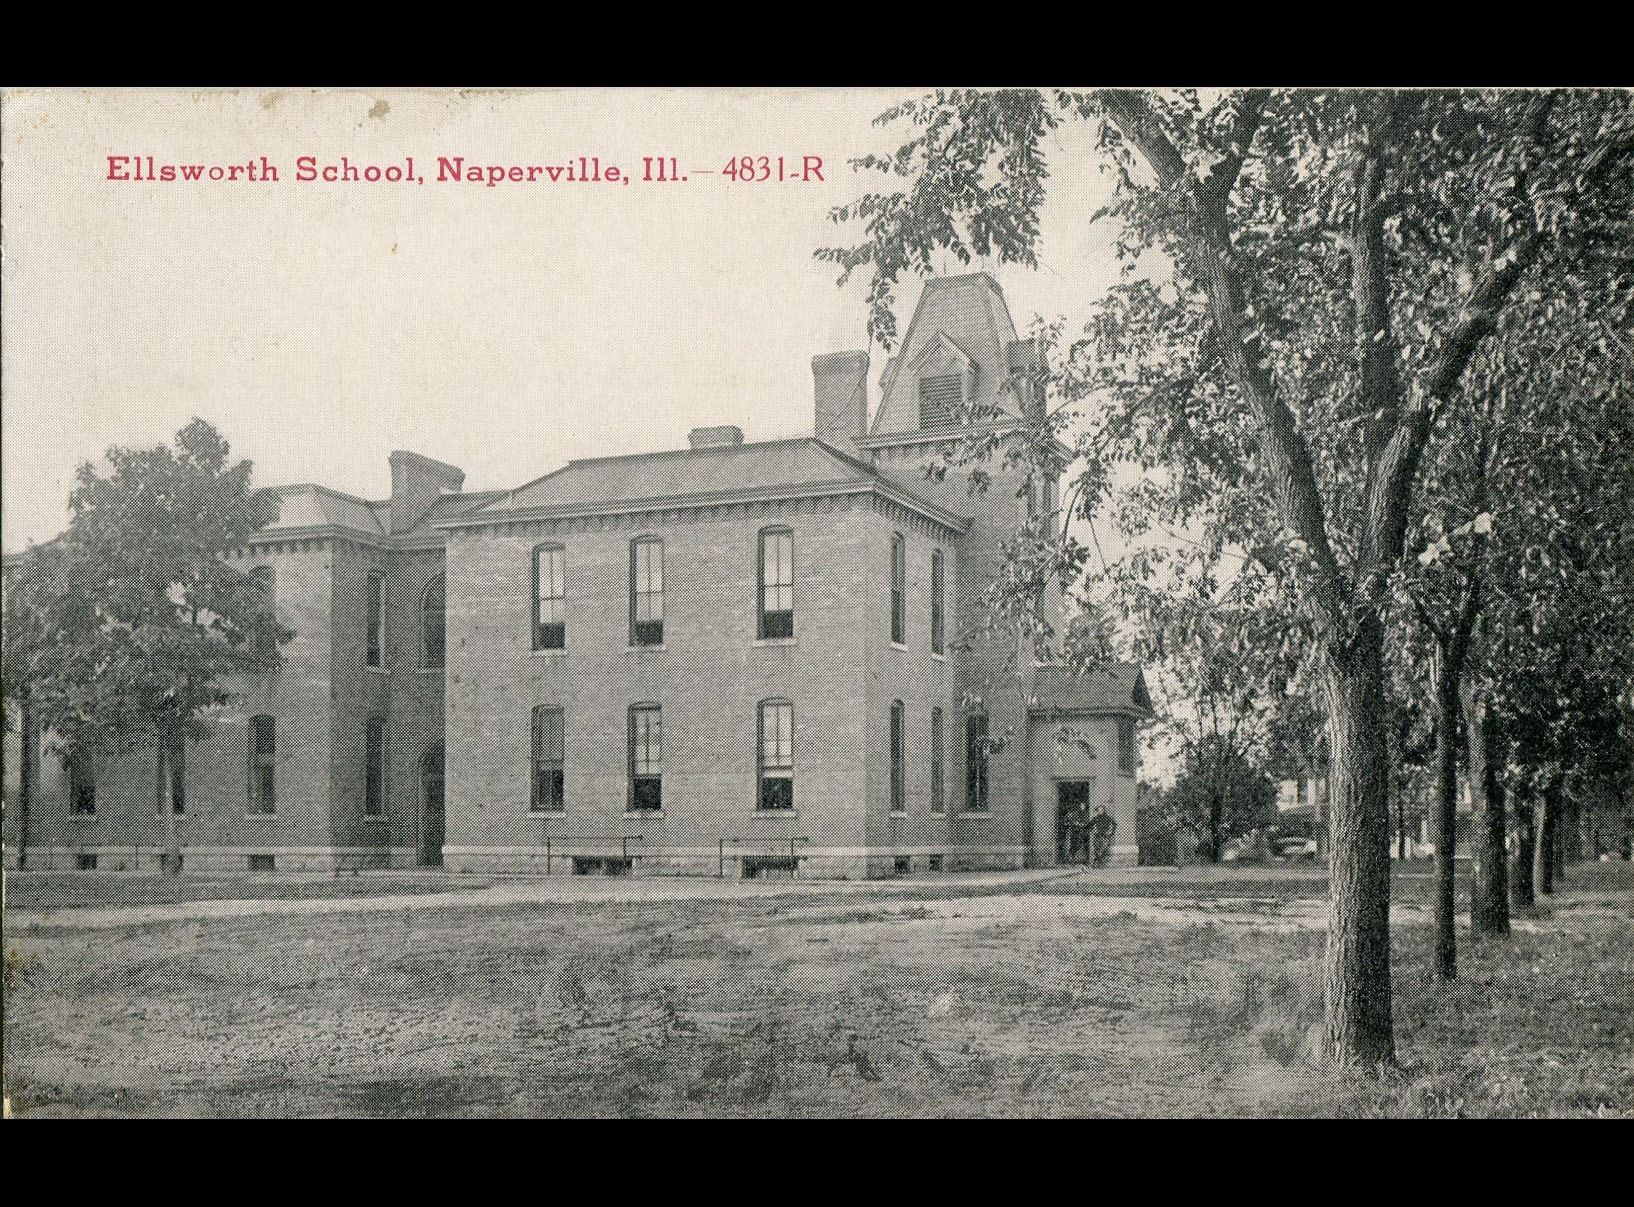 Ellsworth School, circa 1914